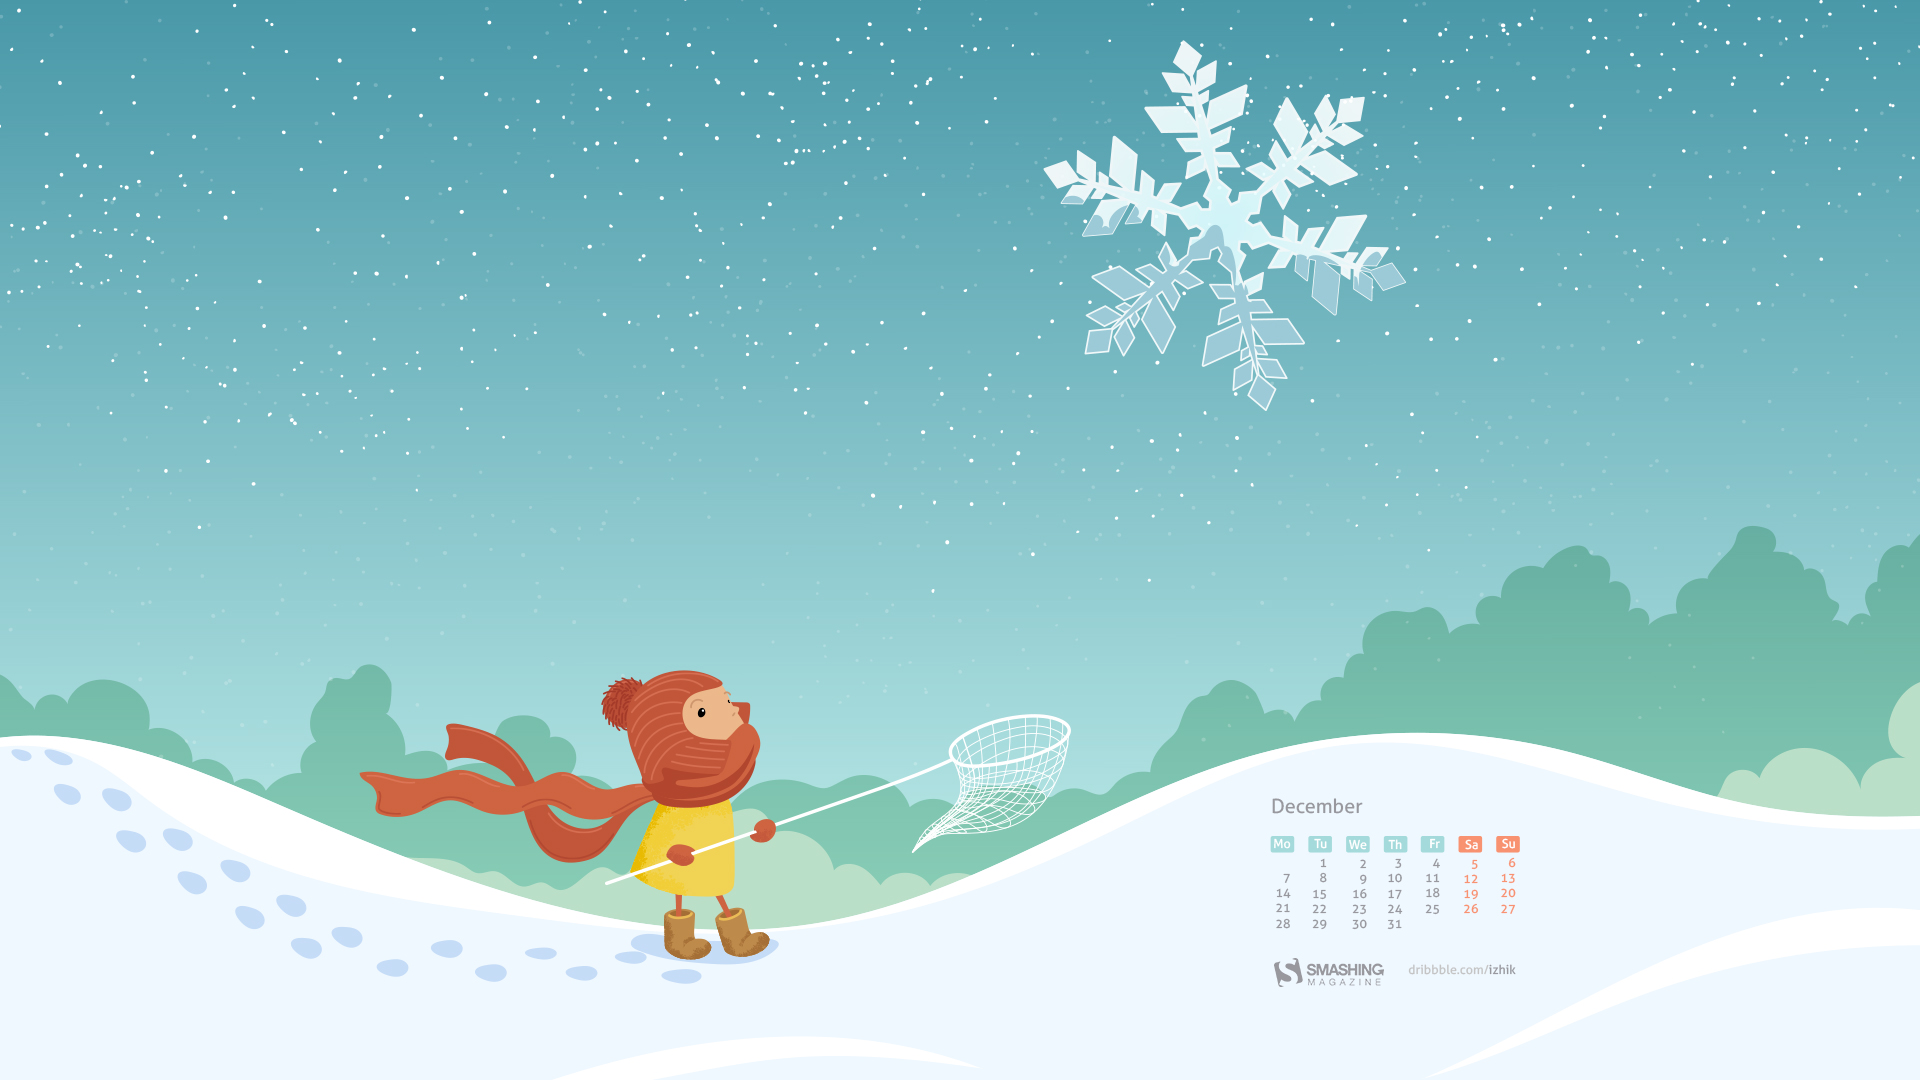 Desktop wallpaper calendar - Decembrie 2015